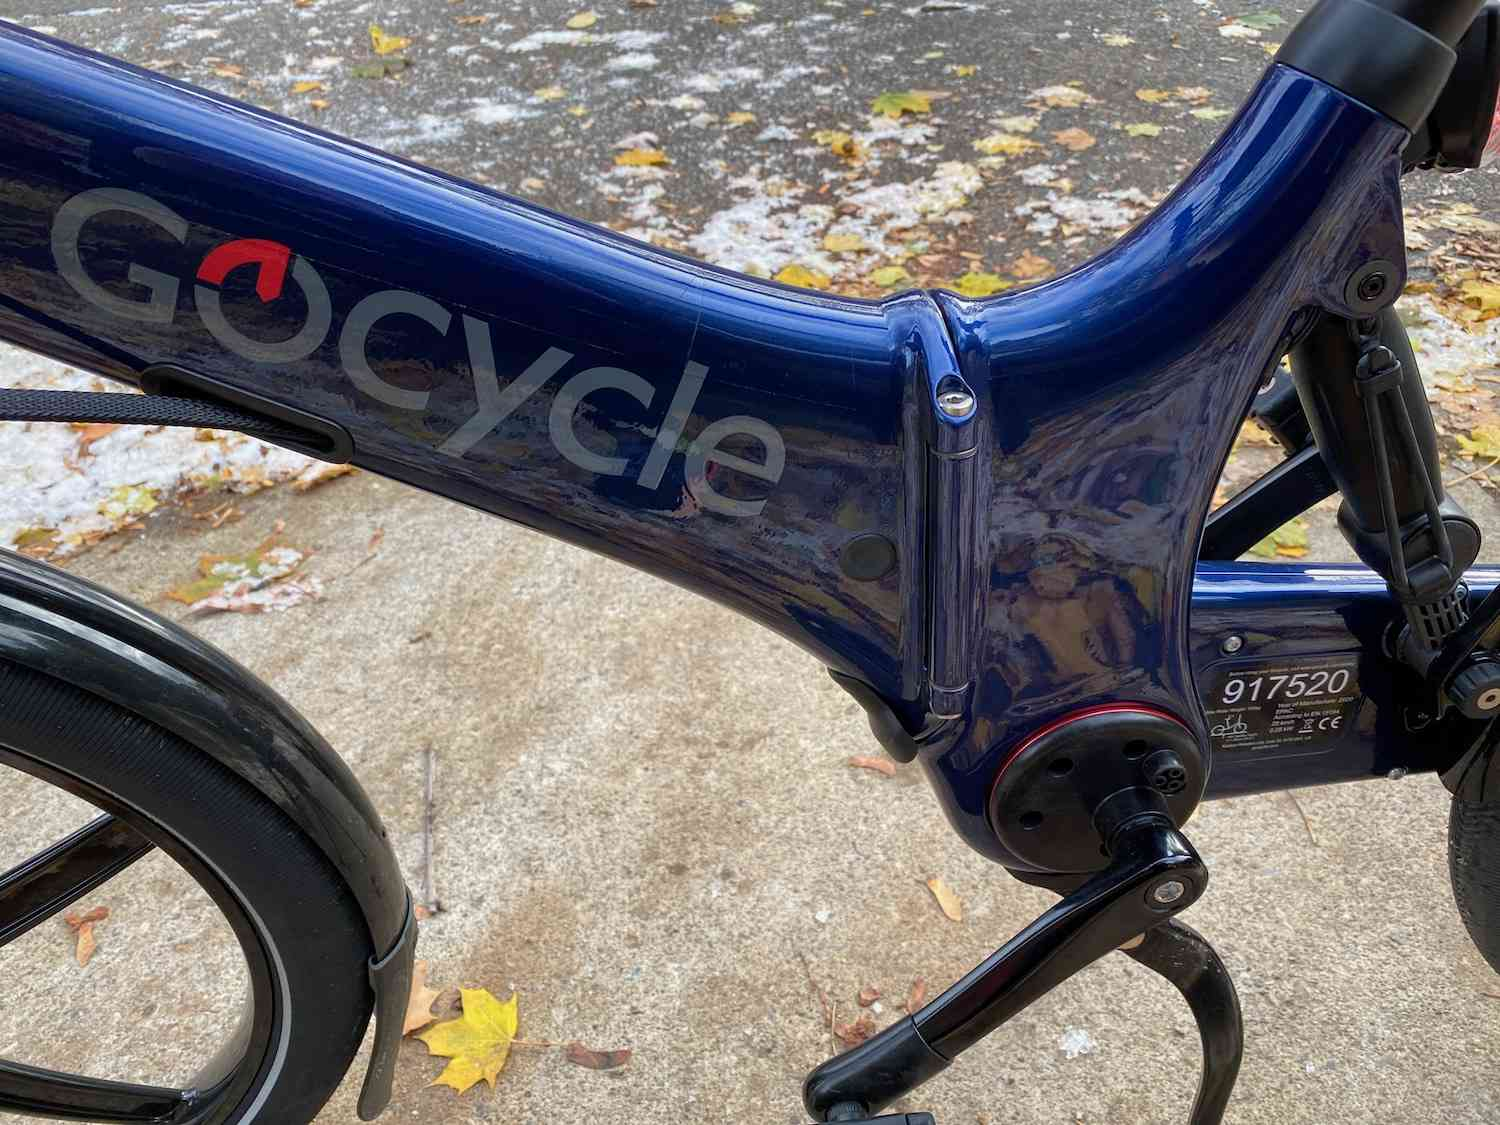 Gocycle middle